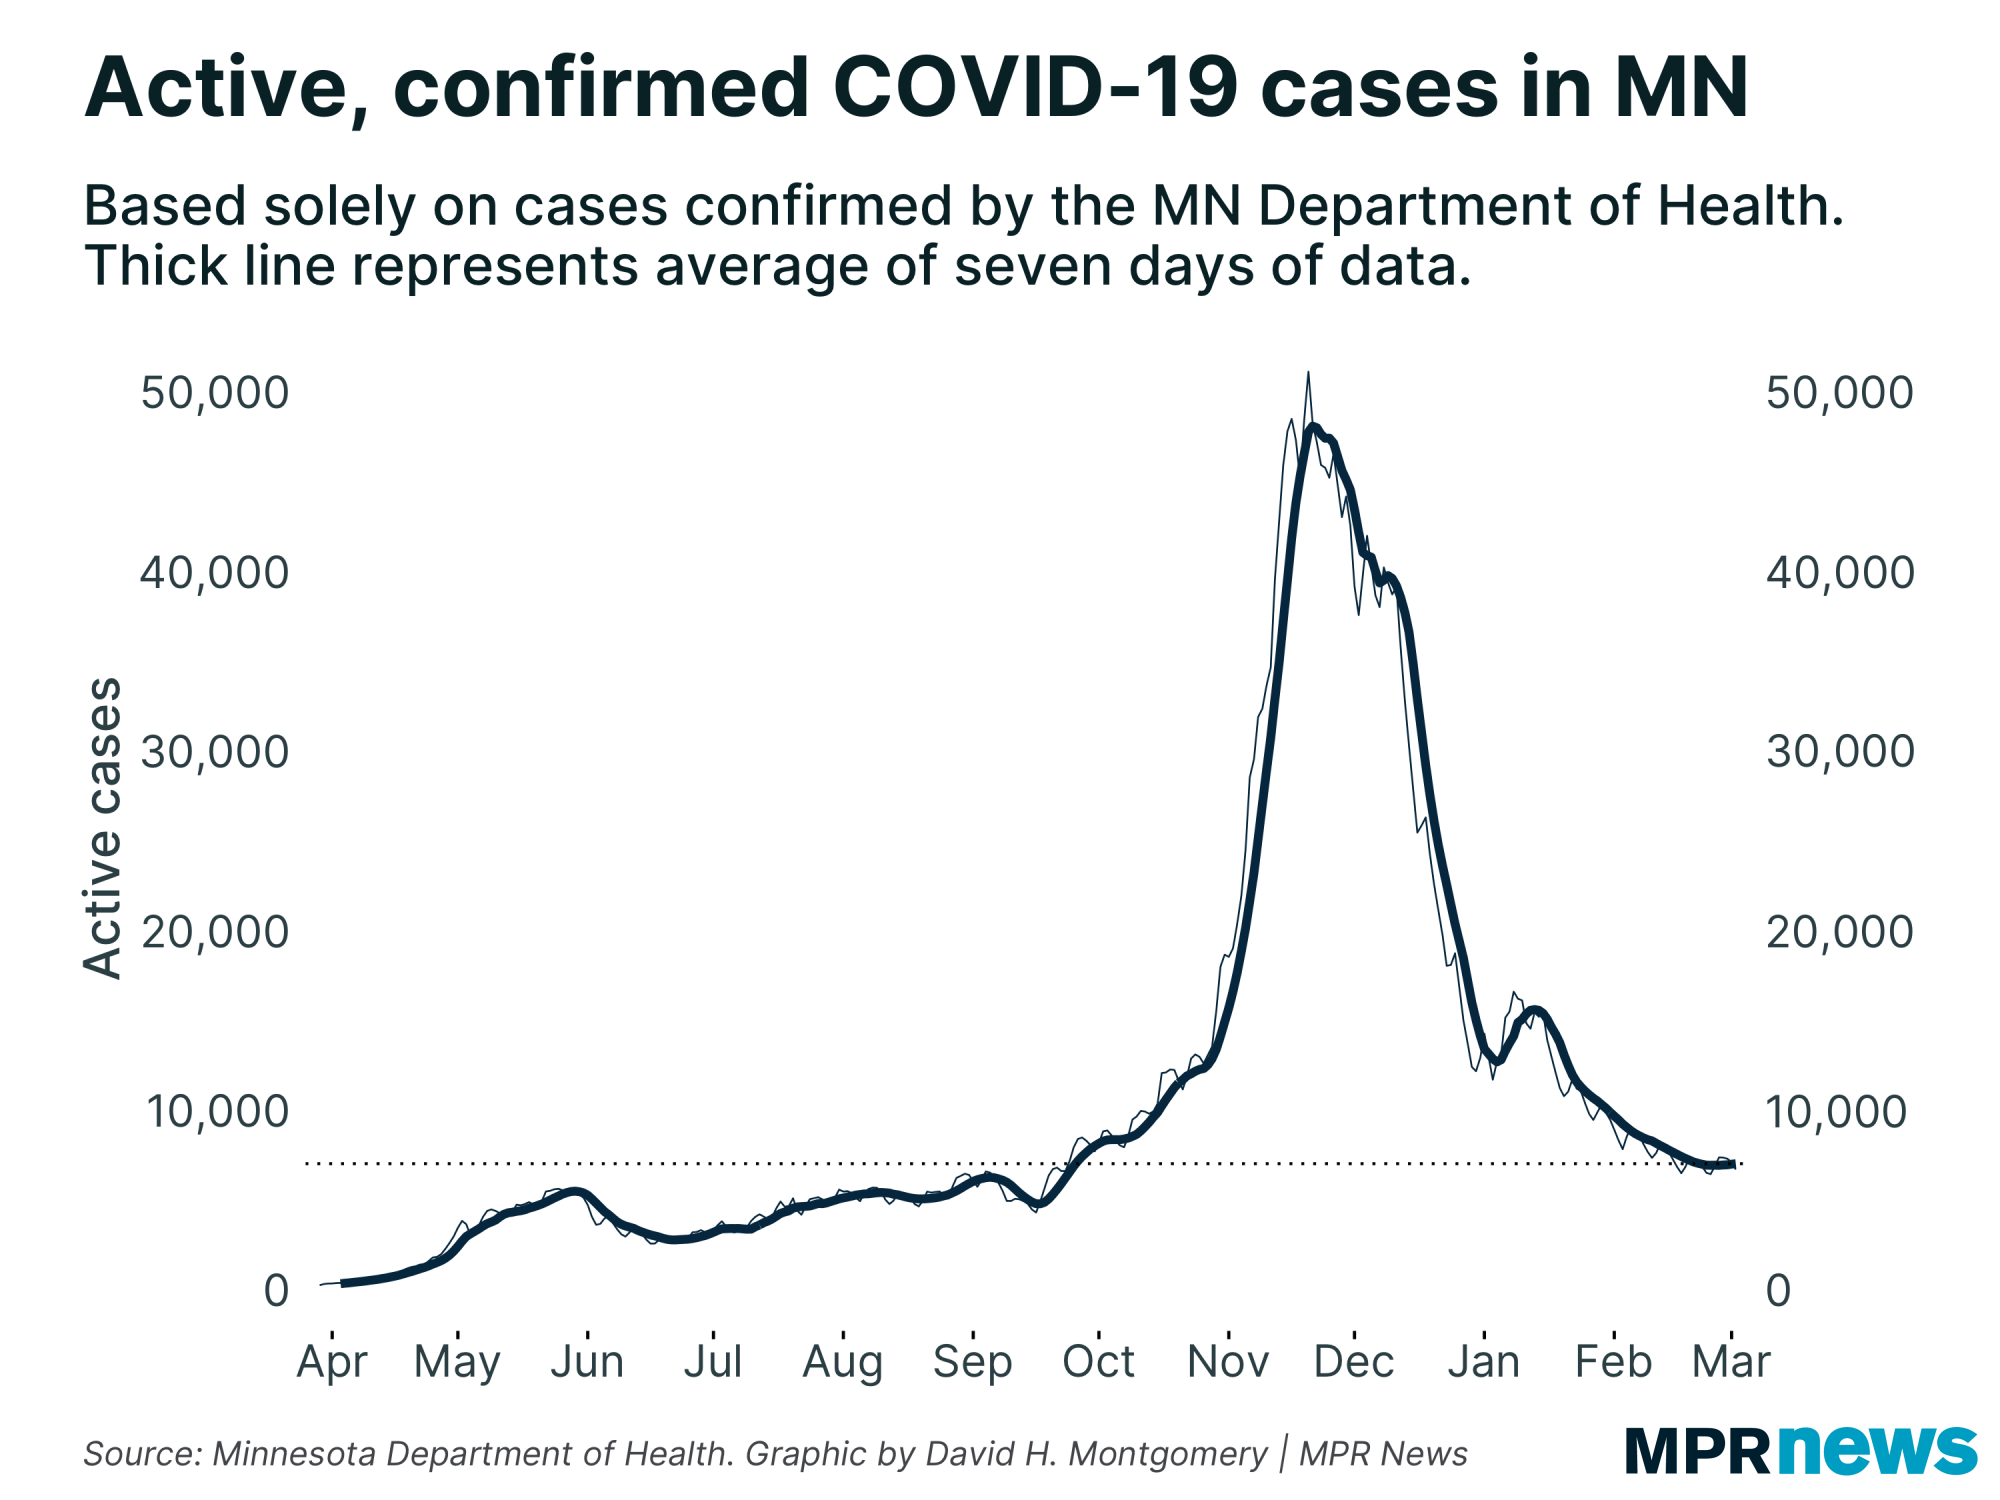 Active and Confirmed COVID-19 Cases in Minnesota